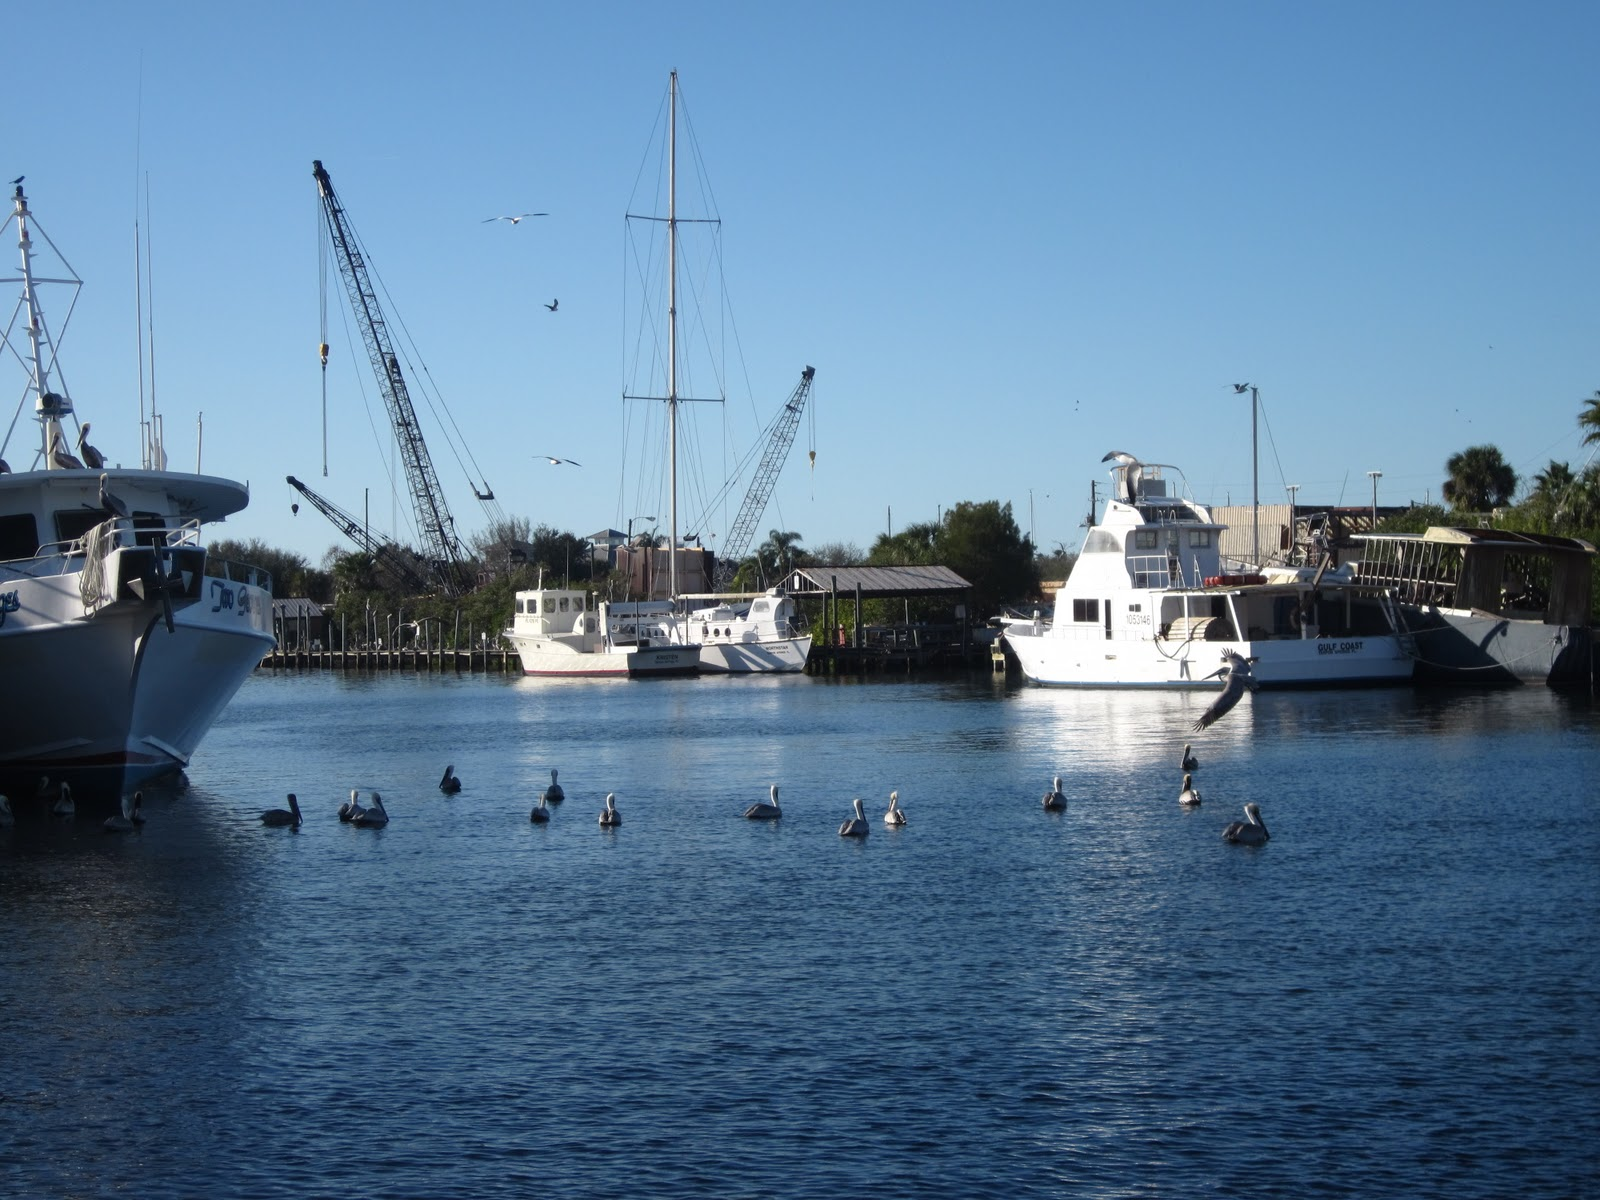 tarpon springs Your one stop guide to tarpon springs florida and the sponge docks.